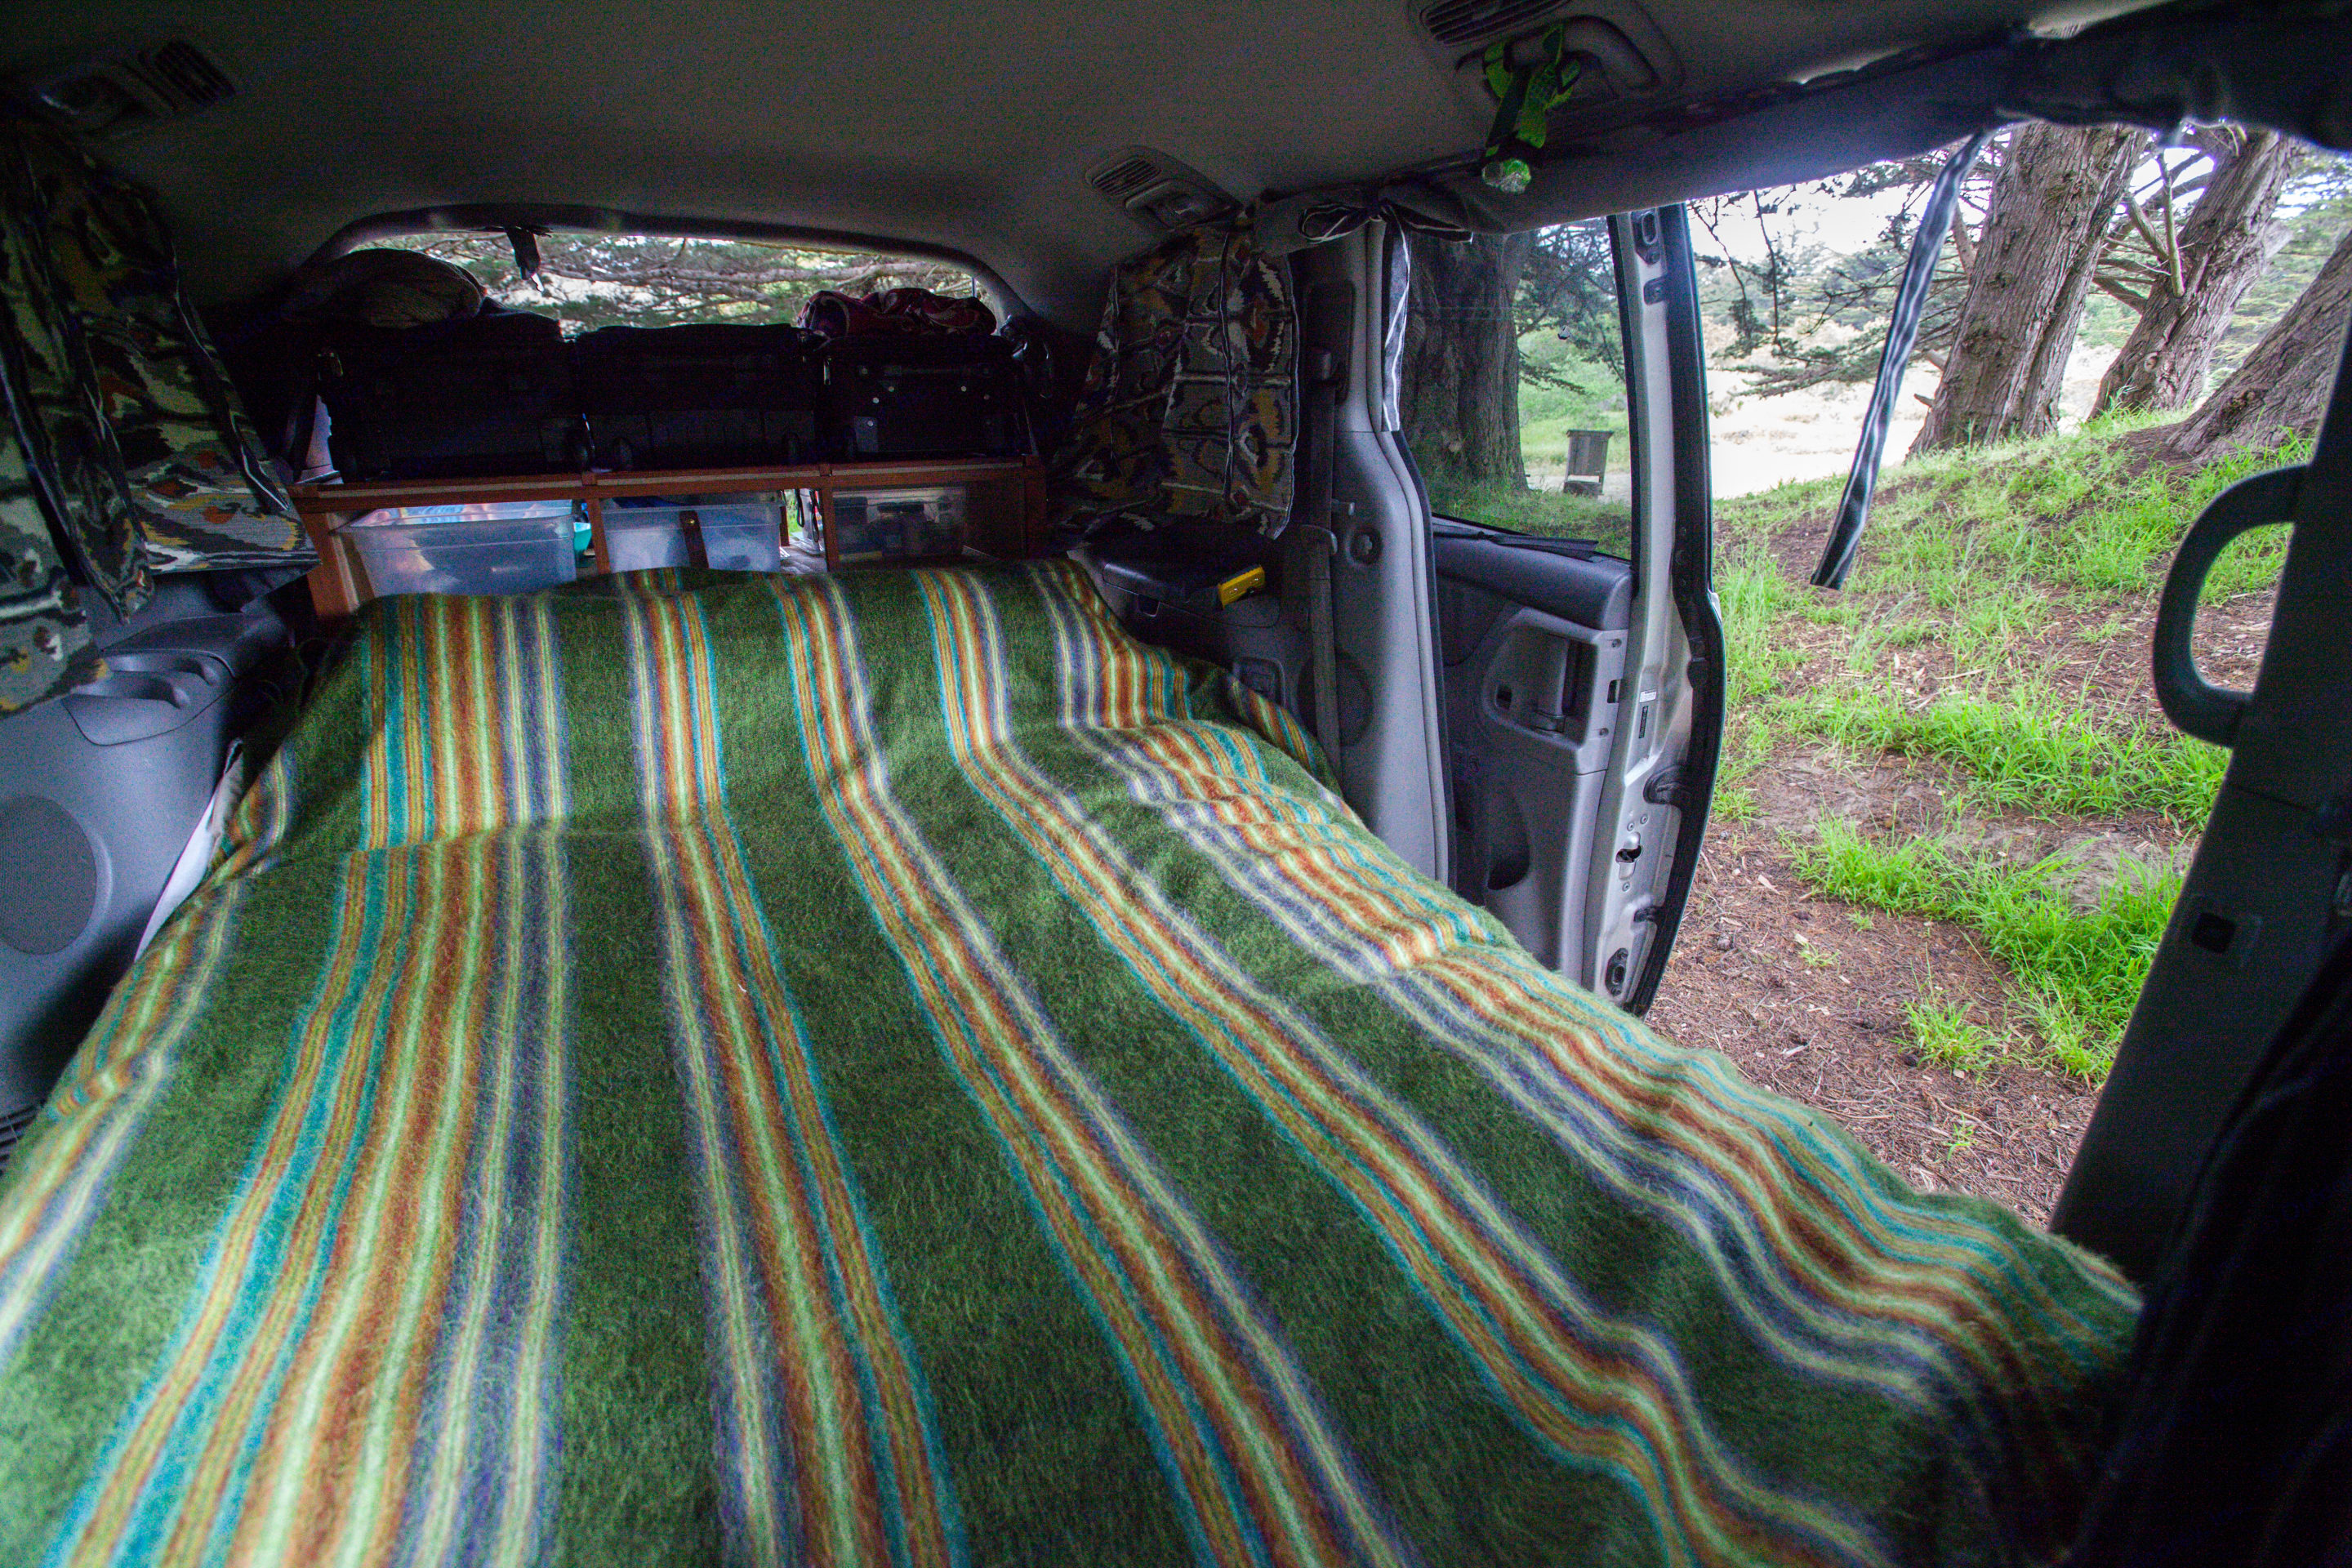 One side has an automatic opening. The other side you need to use the handle to pull open. Each side of bed has access to outside. . Toyota Sienna 2007